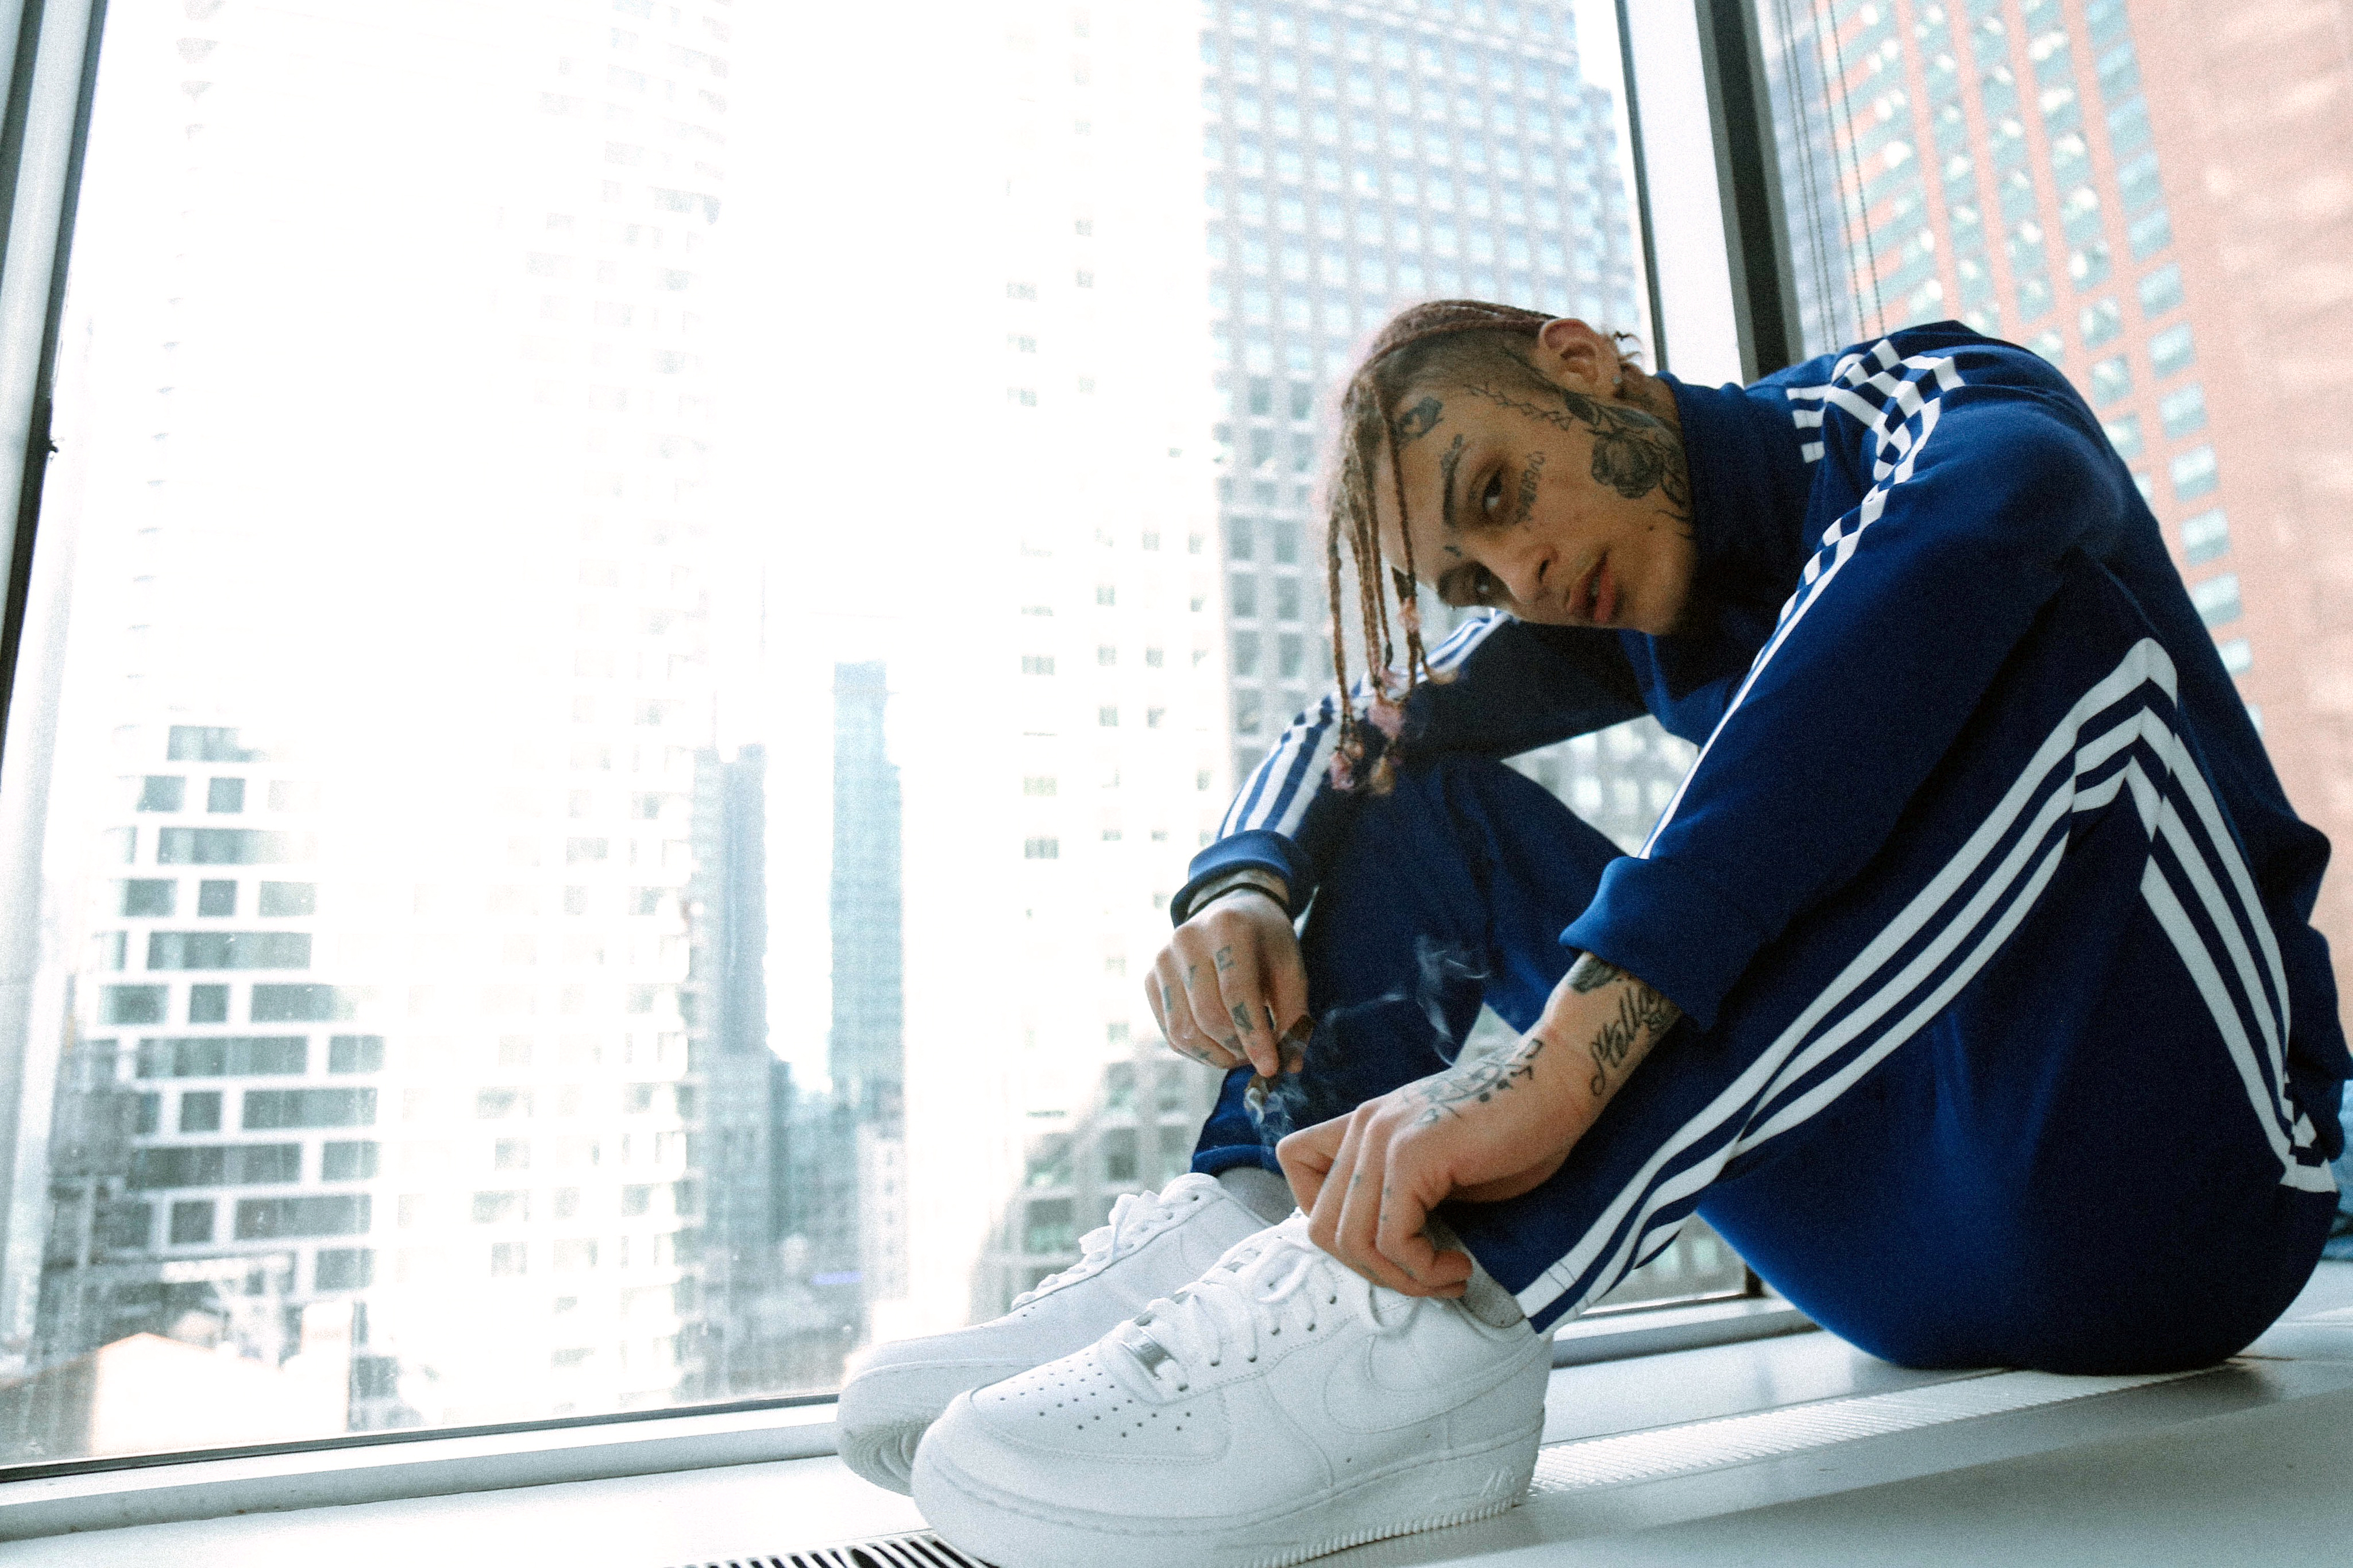 Lil Skies: SoundCloud Rapper With 'Red Roses,' 'Nowadays